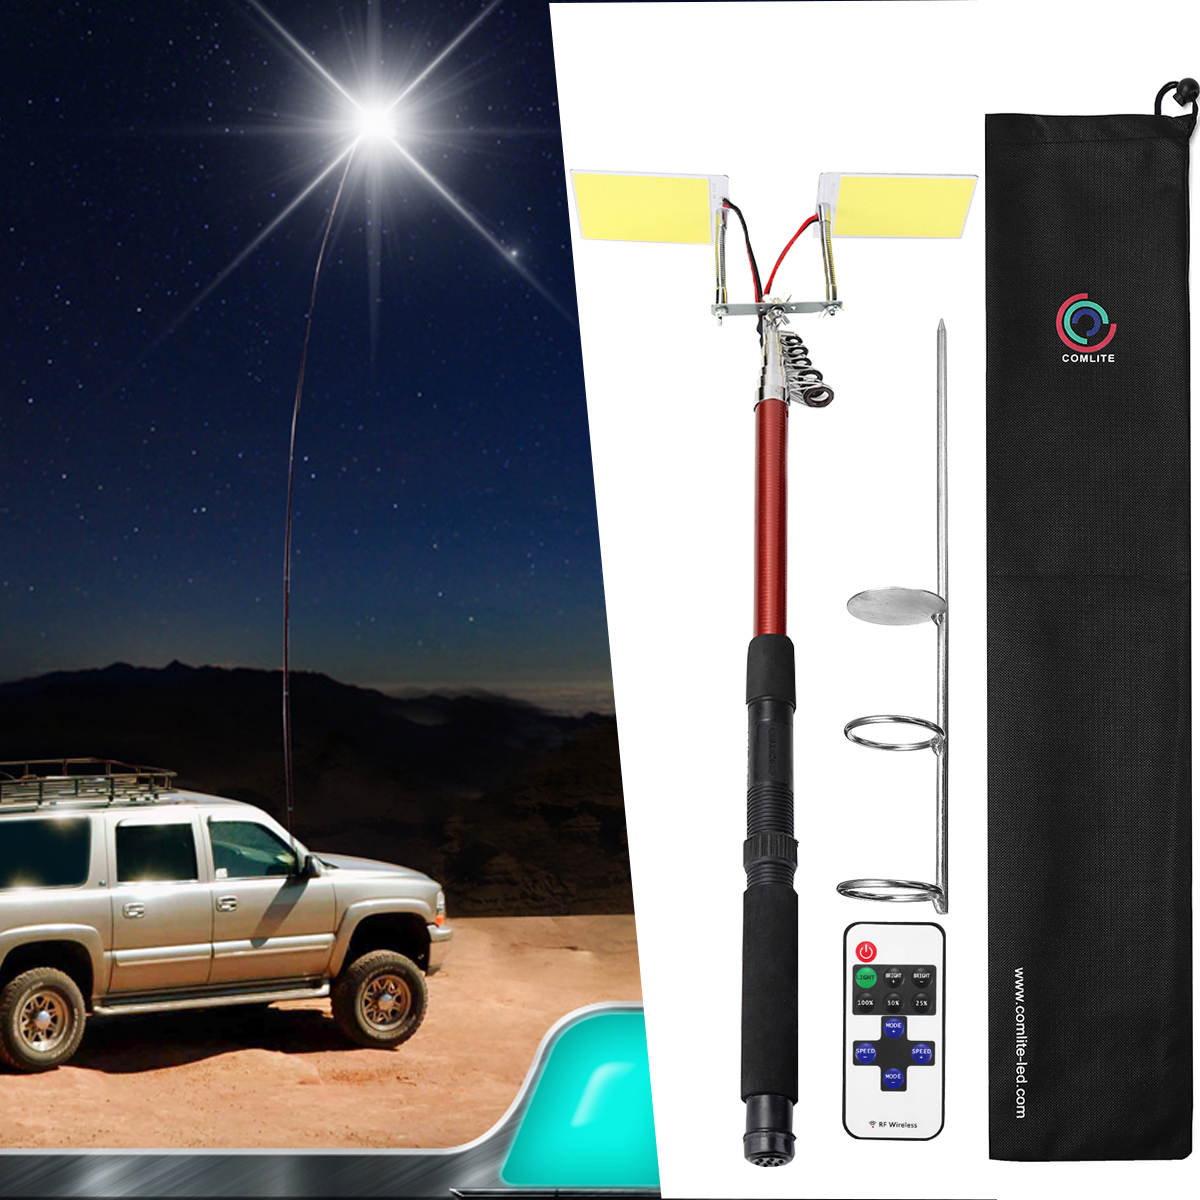 12V LED Outdoor Camping Lantern Telescopic Fishing Rod Light Night Fishing Road Trip Party Lighting